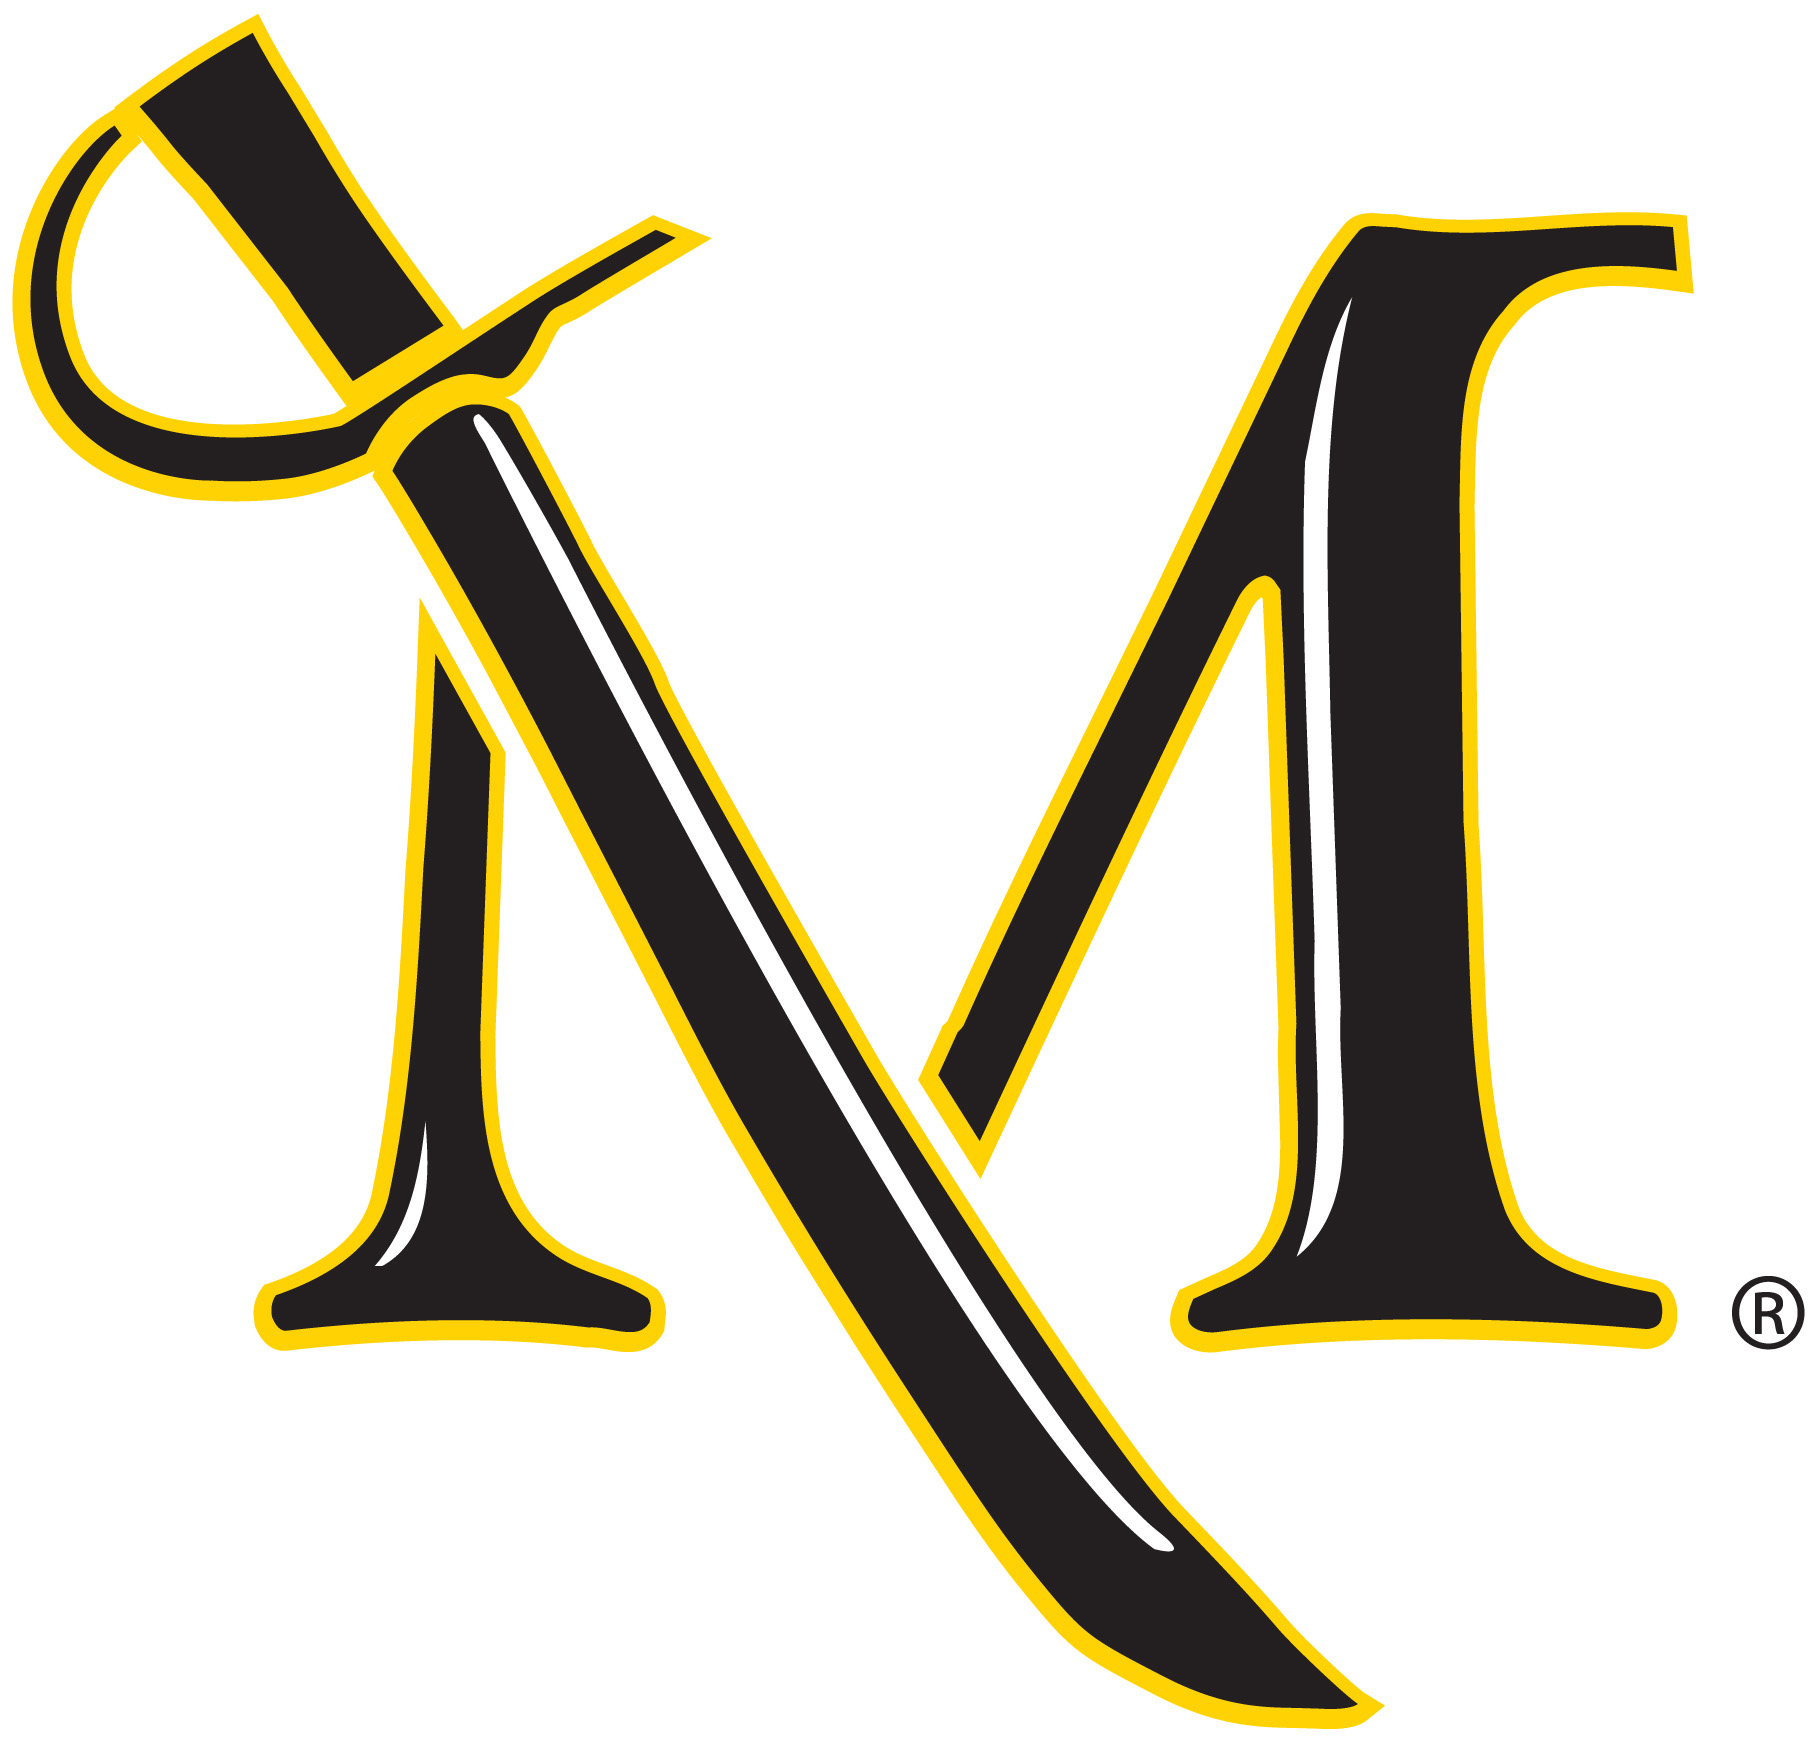 millersville dating This course contains up-to-date information on essential subjects such as solar   to review the full millersville university study abroad policy, please view the.